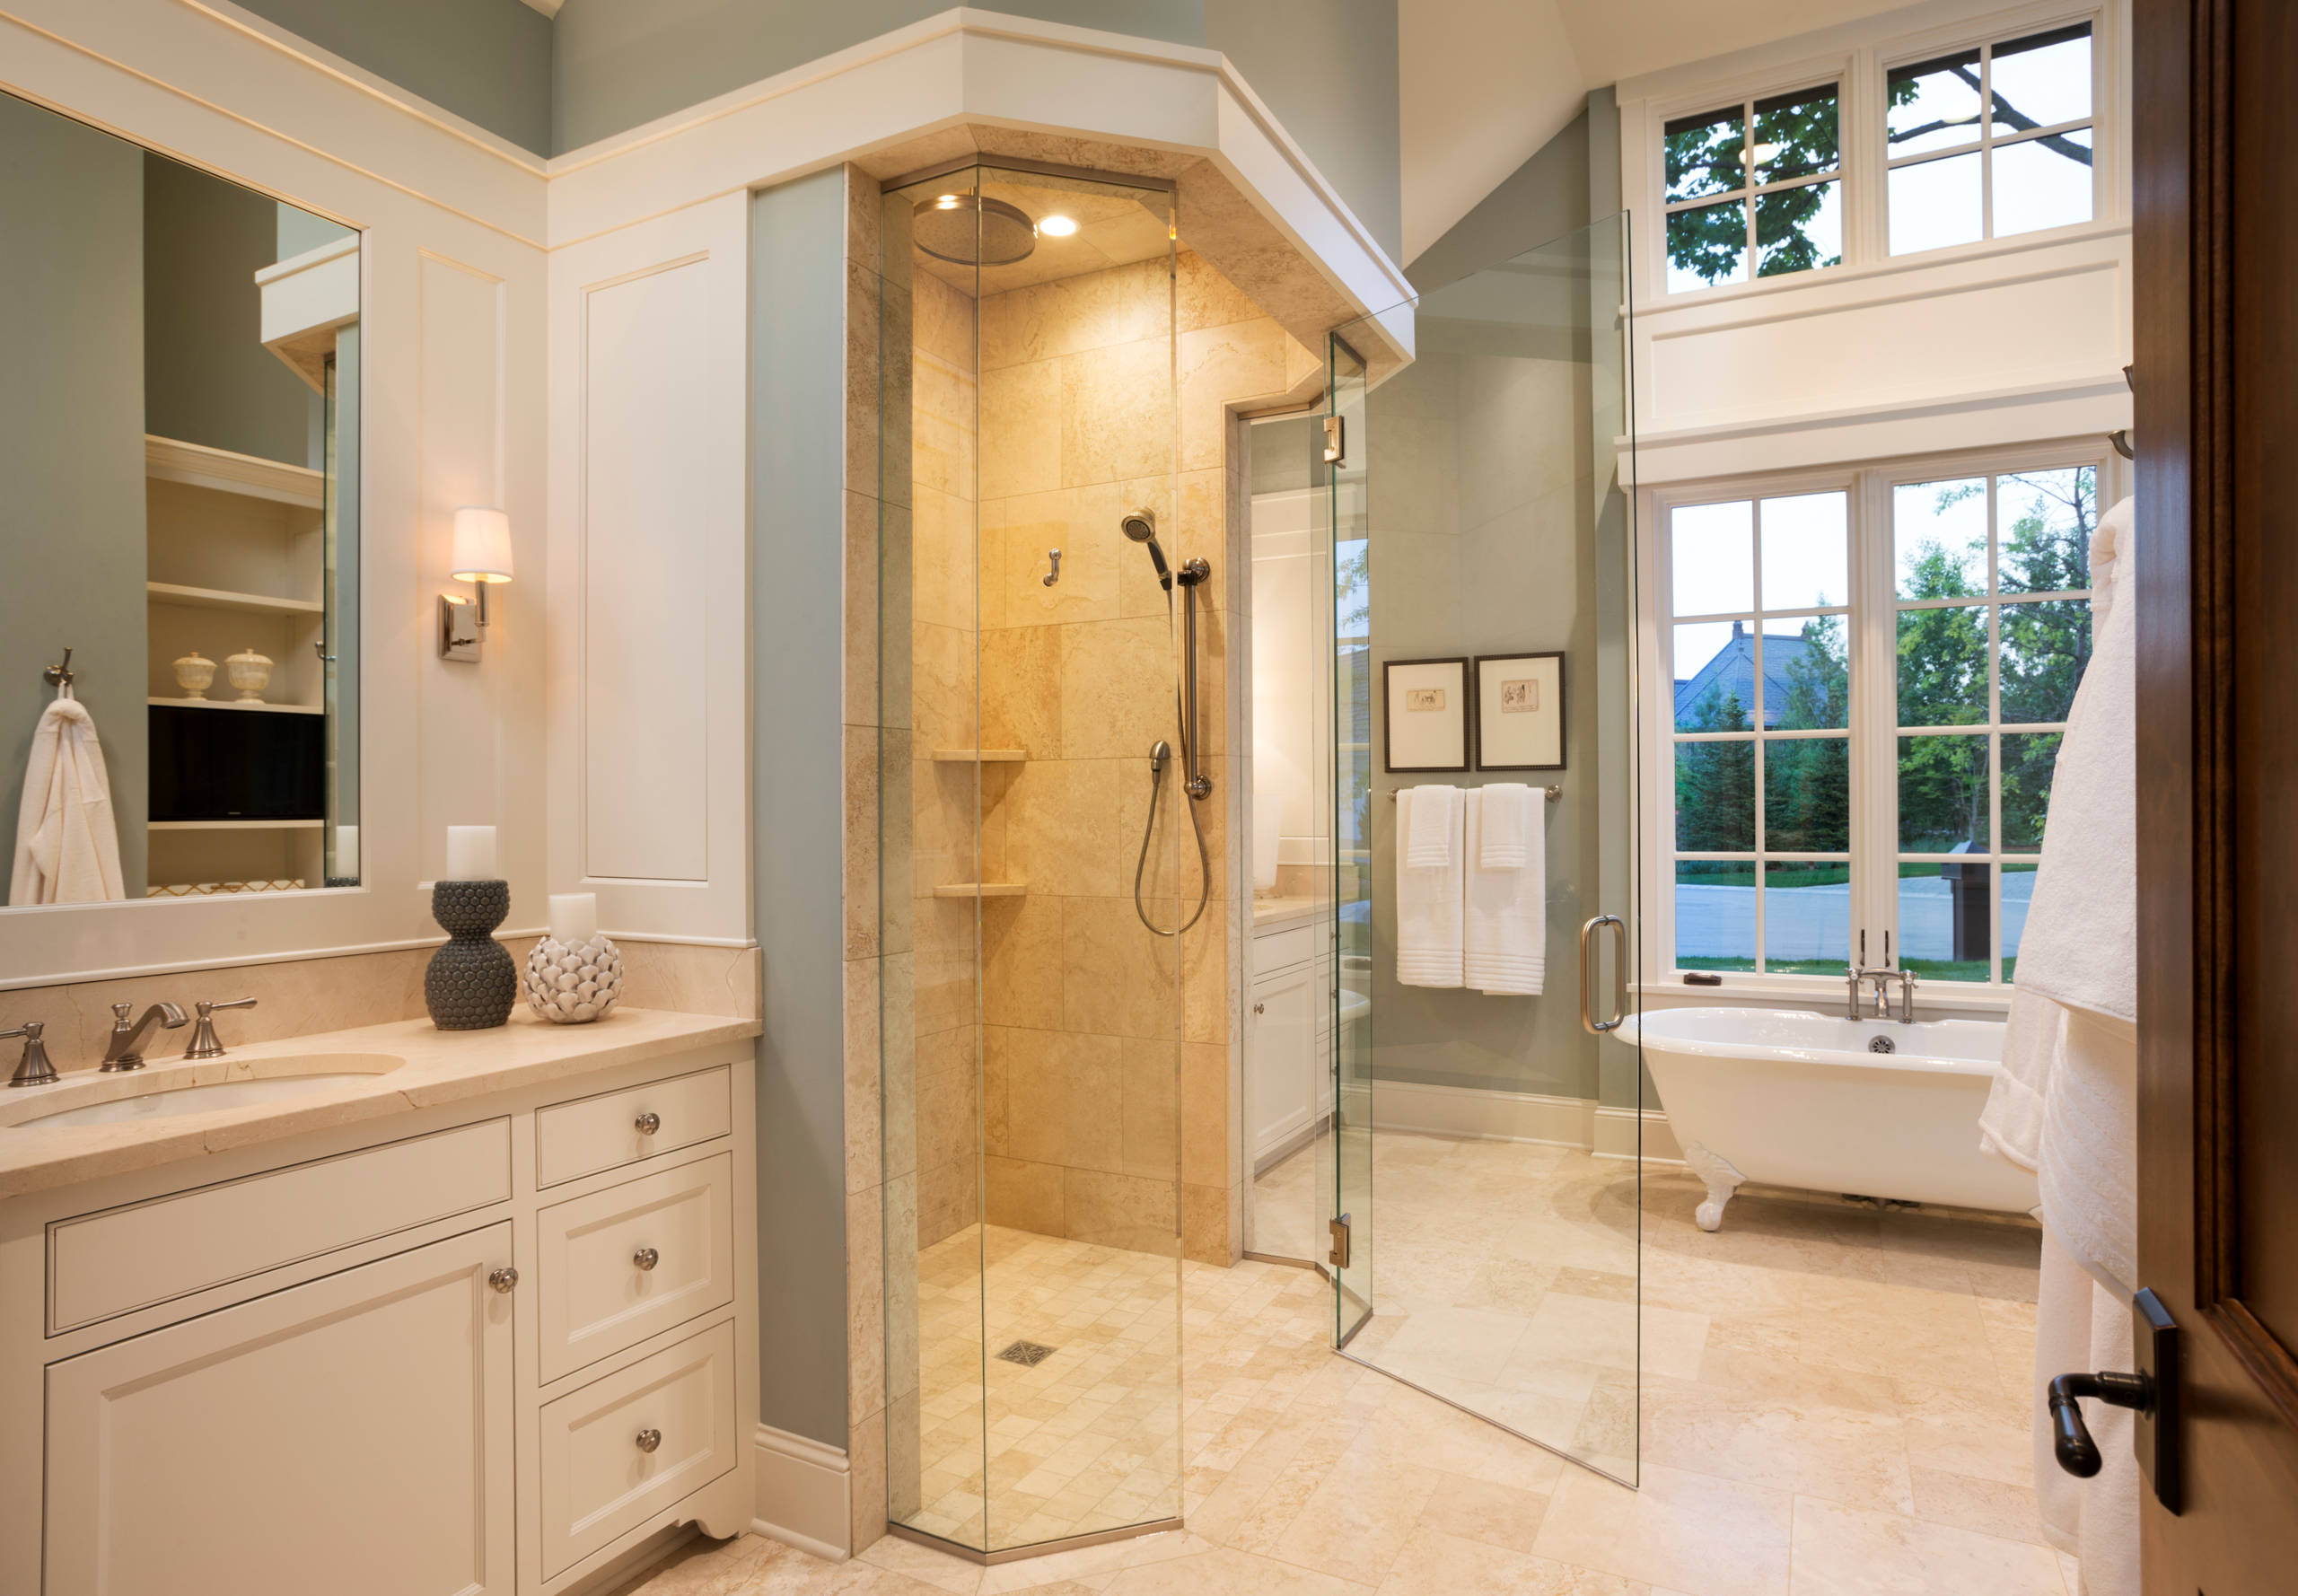 75 Beautiful French Country Bathroom Pictures Ideas January 2021 Houzz